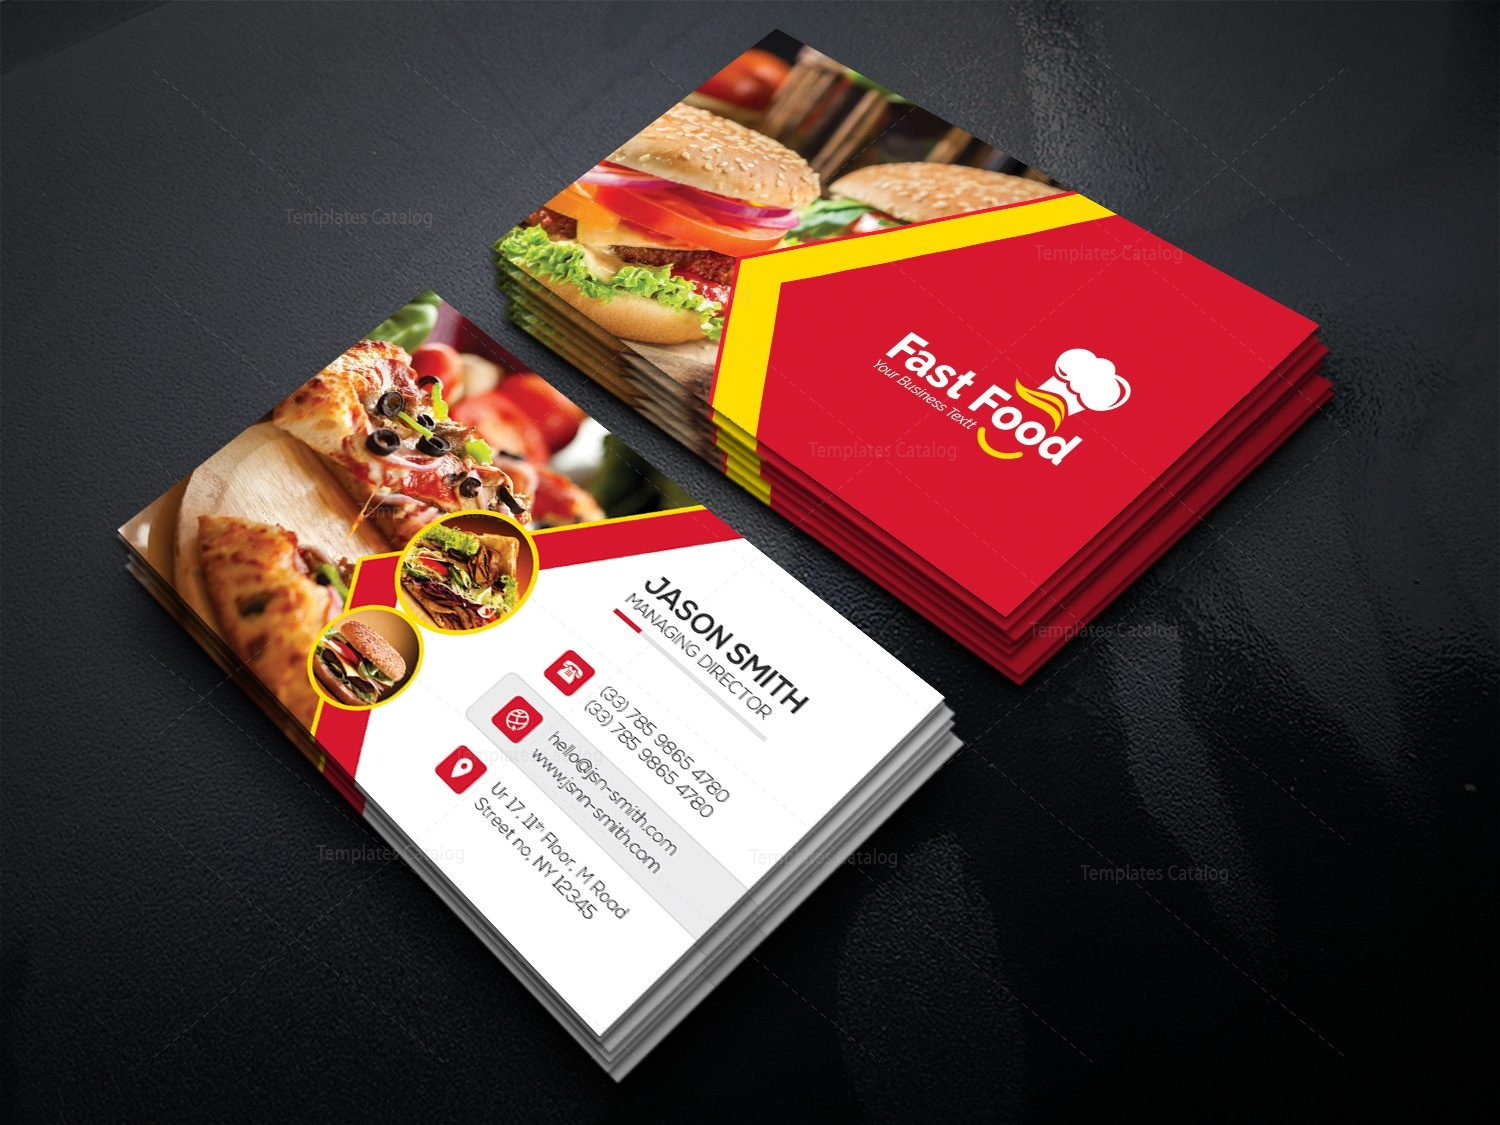 Fast food business card template 000511 template catalog fast food business card template friedricerecipe Choice Image